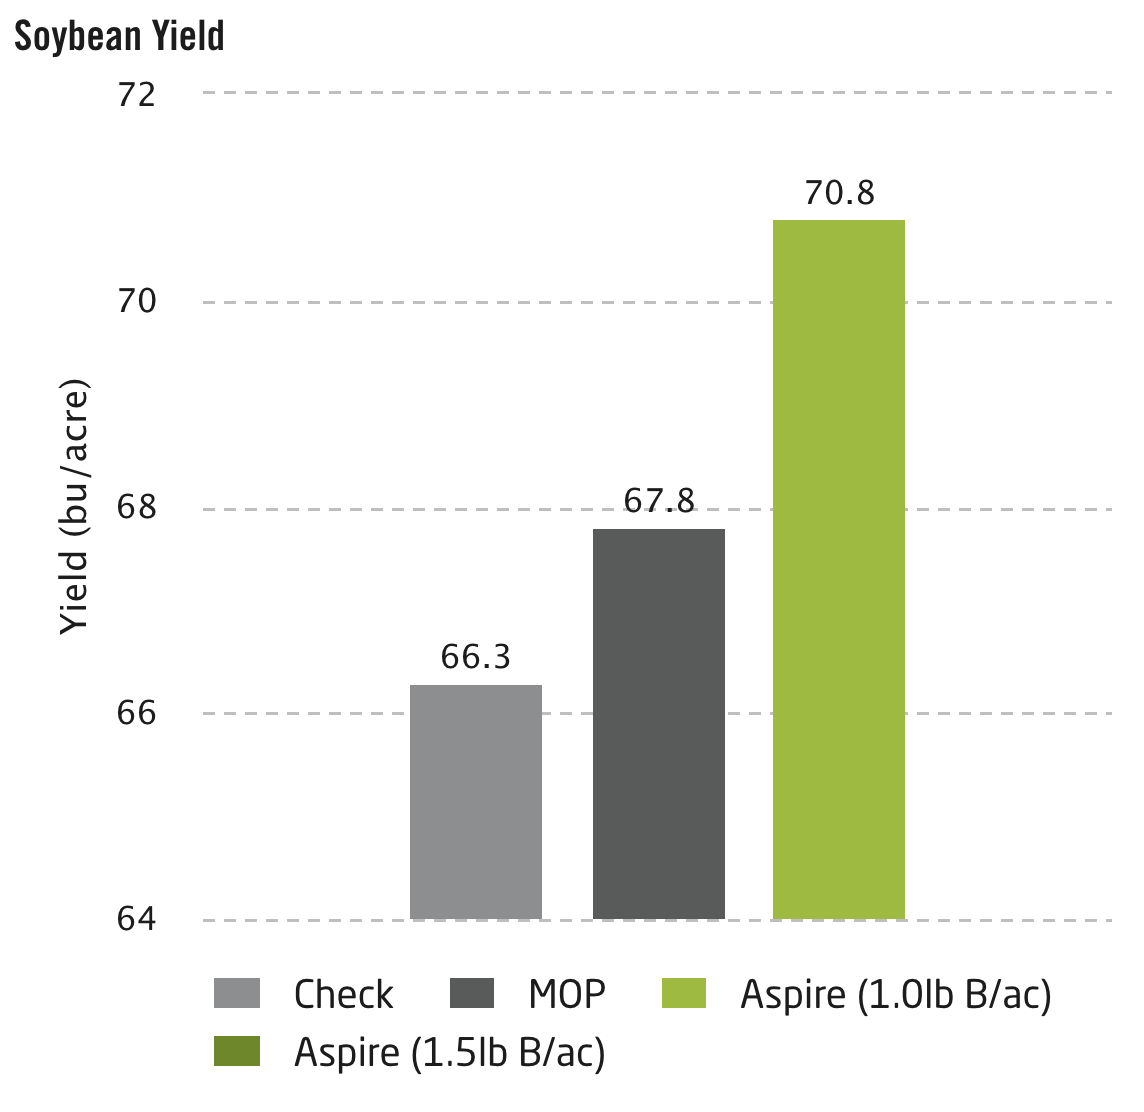 Soybean Yield